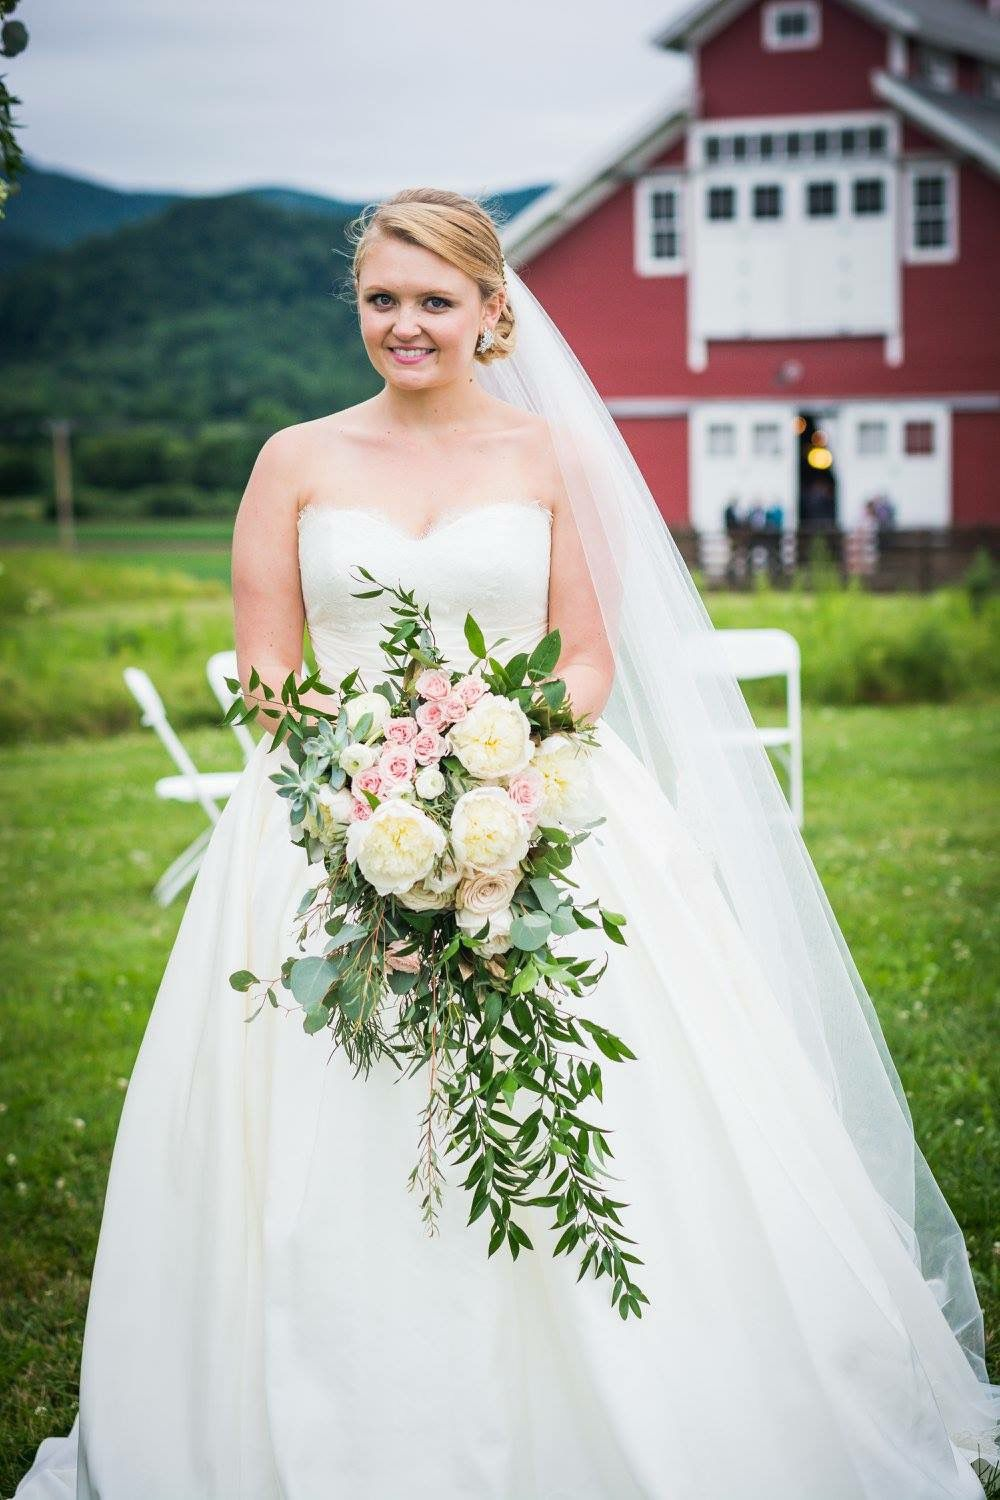 A bride holding a bouquet, standing in a field in her wedding dress.